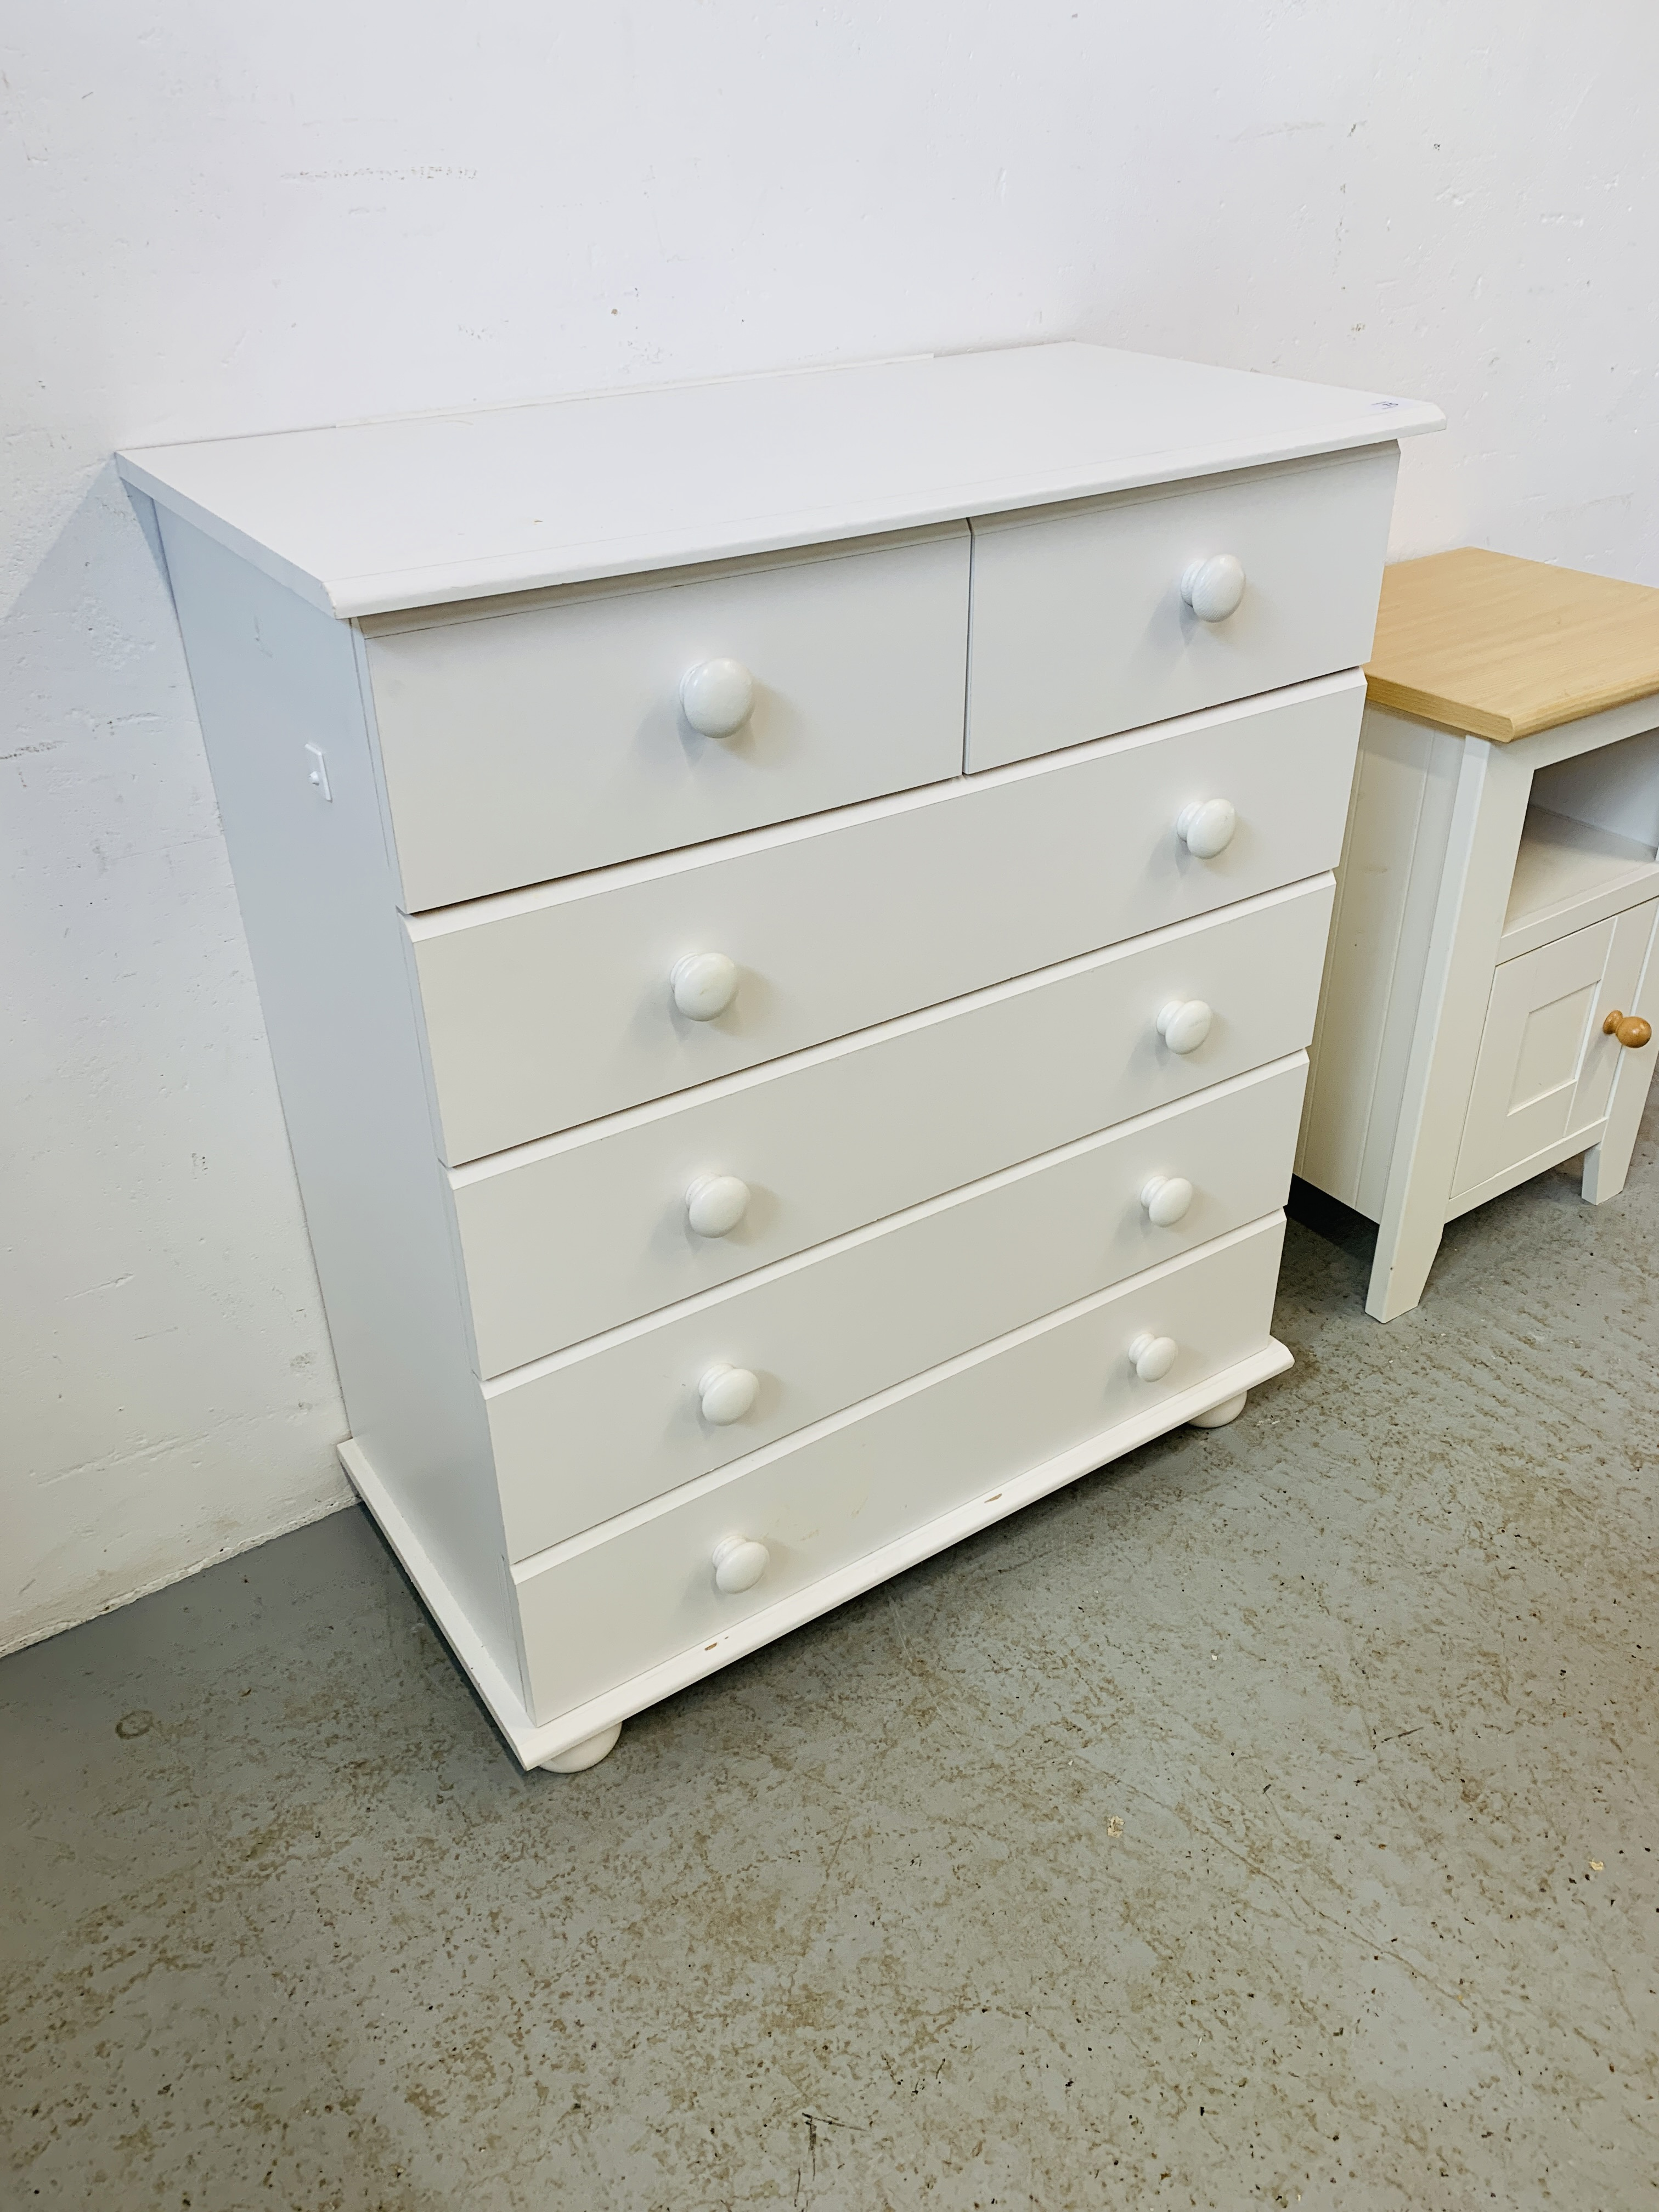 A MODERN WHITE FINISH TWO OVER FOUR CHEST OF DRAWERS - W 78CM. H 90CM. D 40CM. - Image 7 of 9